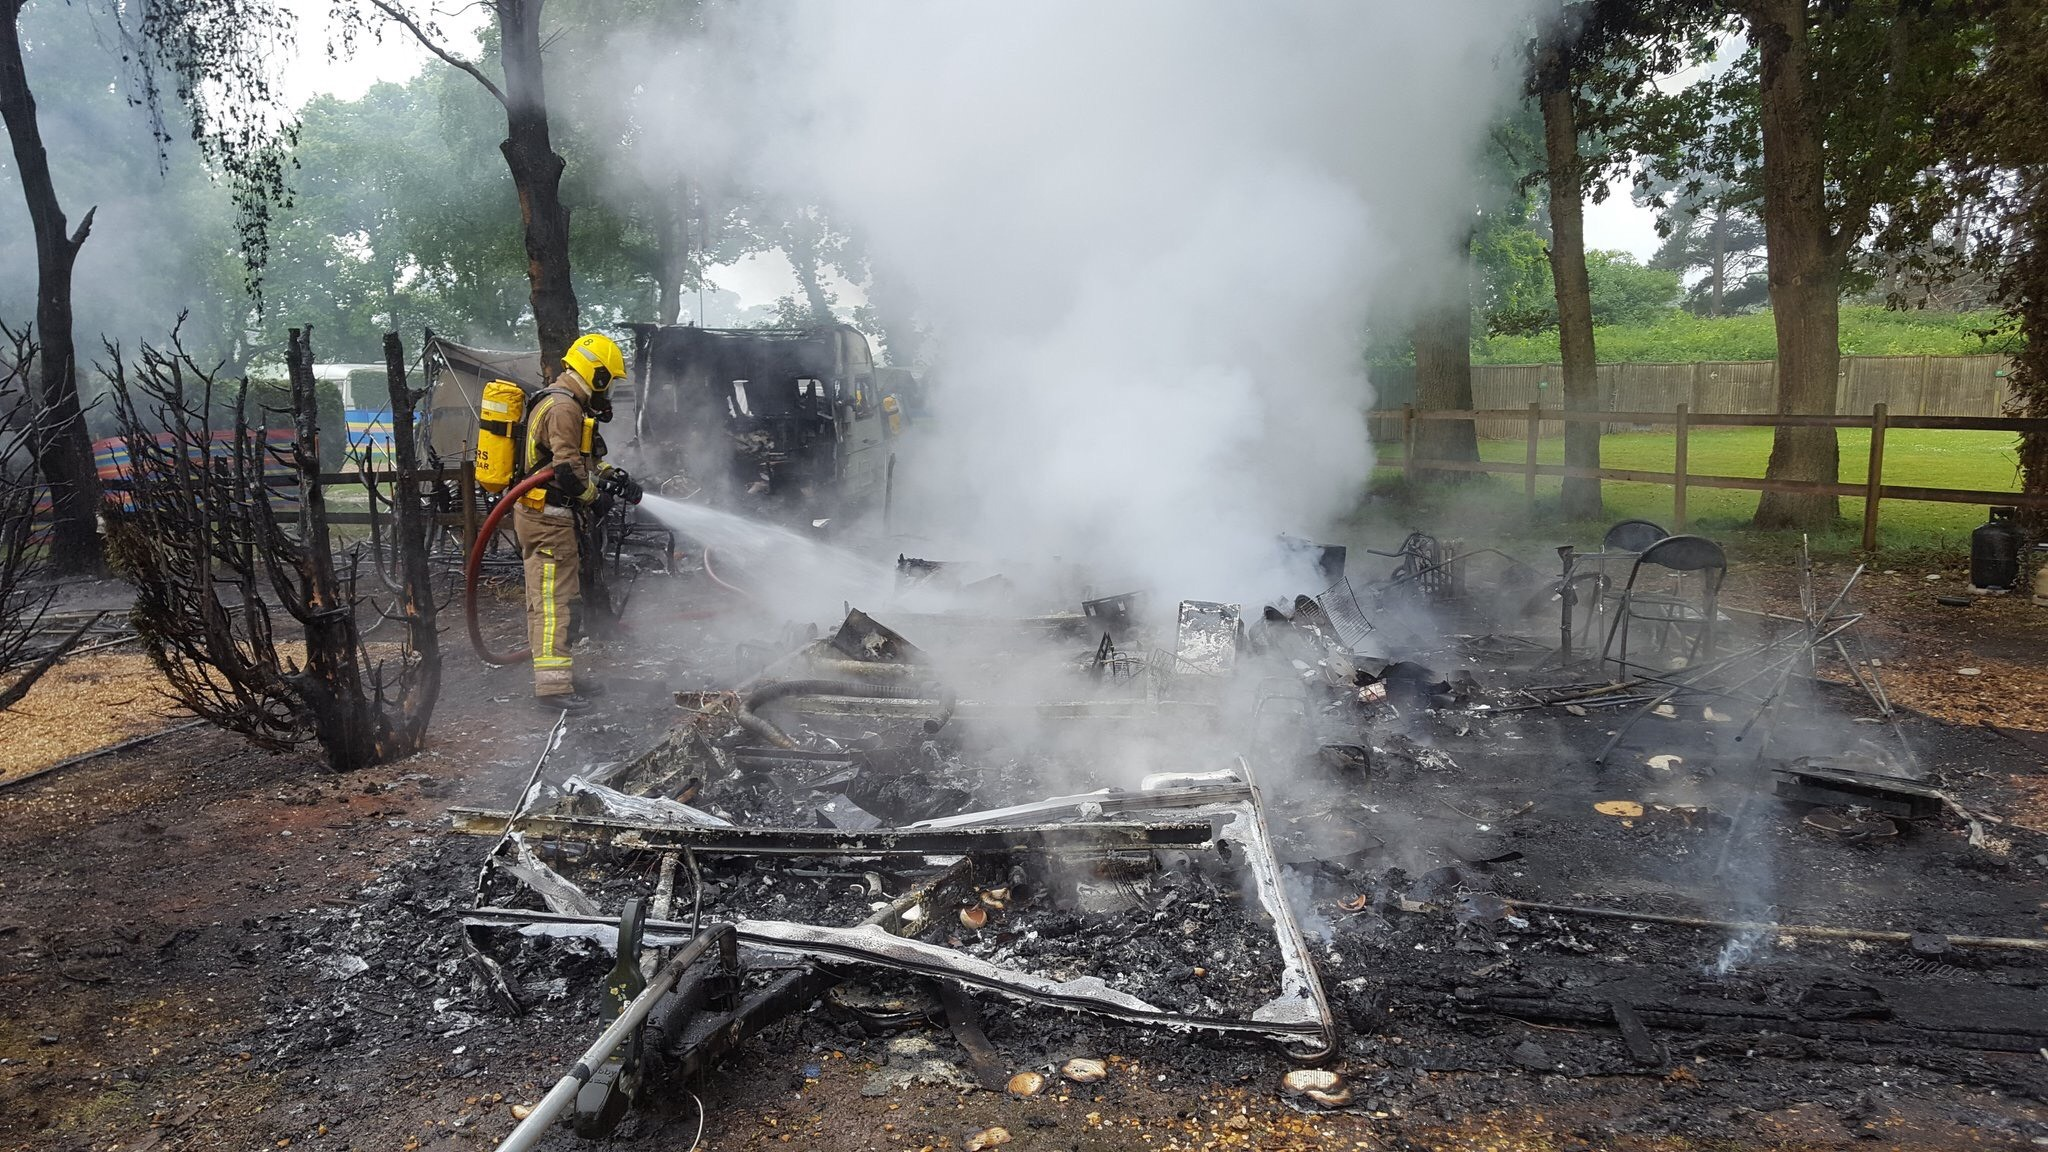 SHOCKING: Pictures released by the fire service show the aftermath of the fire at Sanford Holiday Park